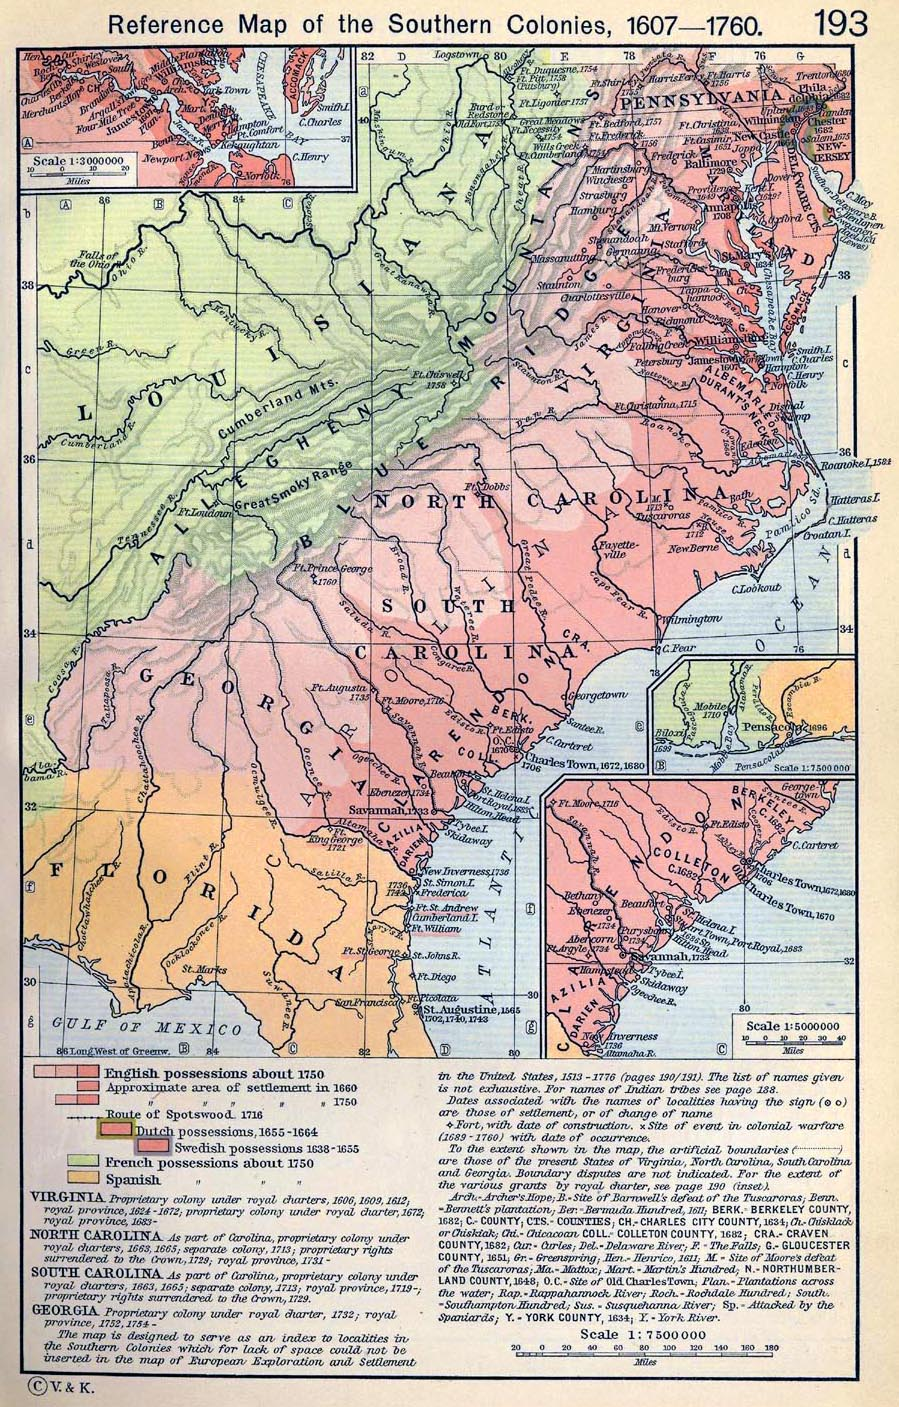 Reference Map of the Southern Colonies, 1607-1760. Insets: Settlements on the James River. The Georgian Coast.